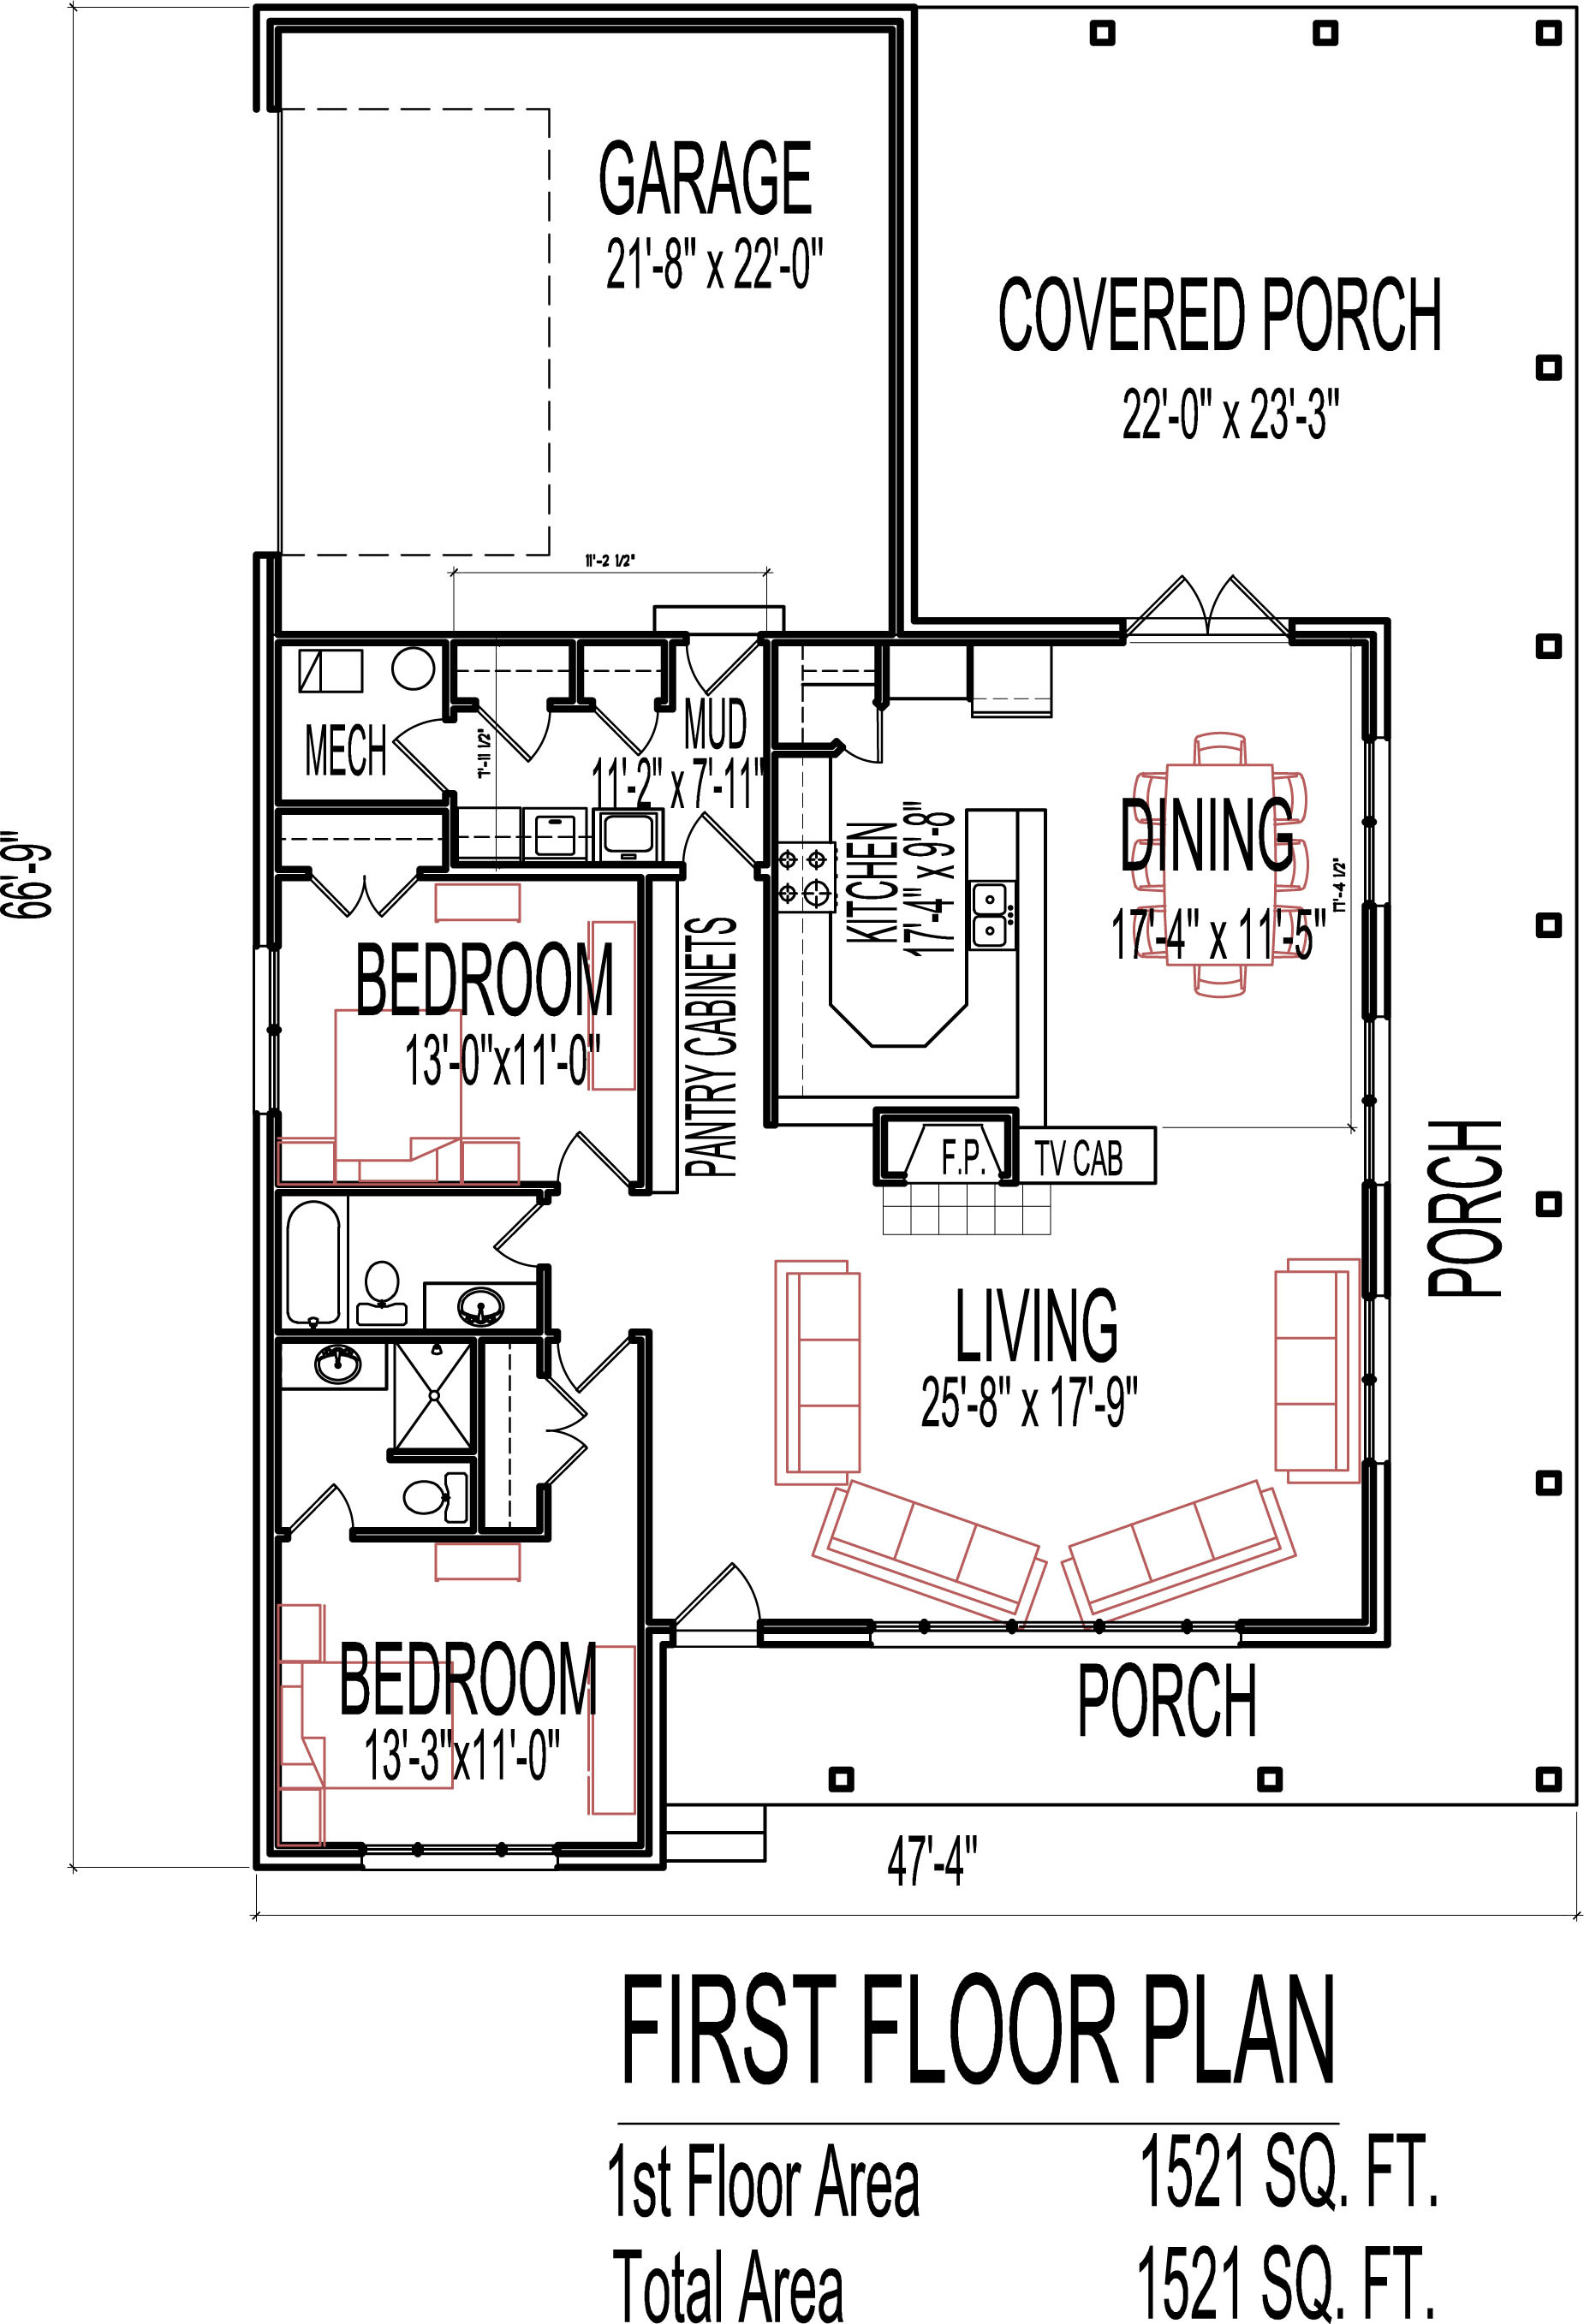 house plans stone cottage 2 bedroom 1 story 1500 SF porch